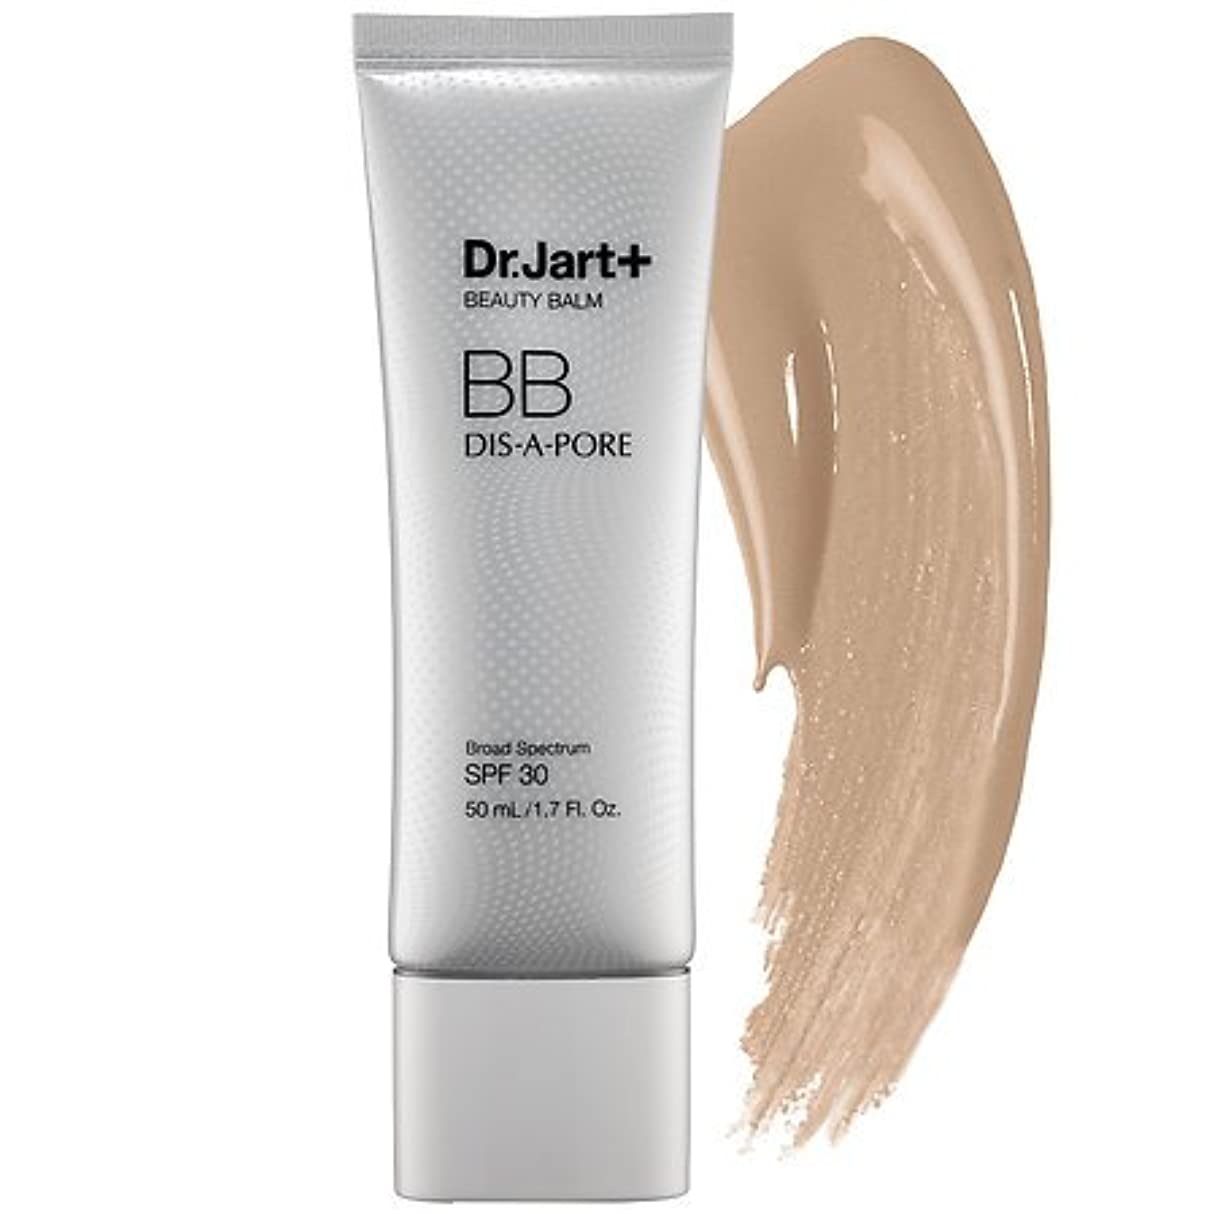 以前は報奨金小間Dr.Jart+ Dis-A-Pore Beauty Balm SPF30_1.7oz [02 Medium-Deep] …